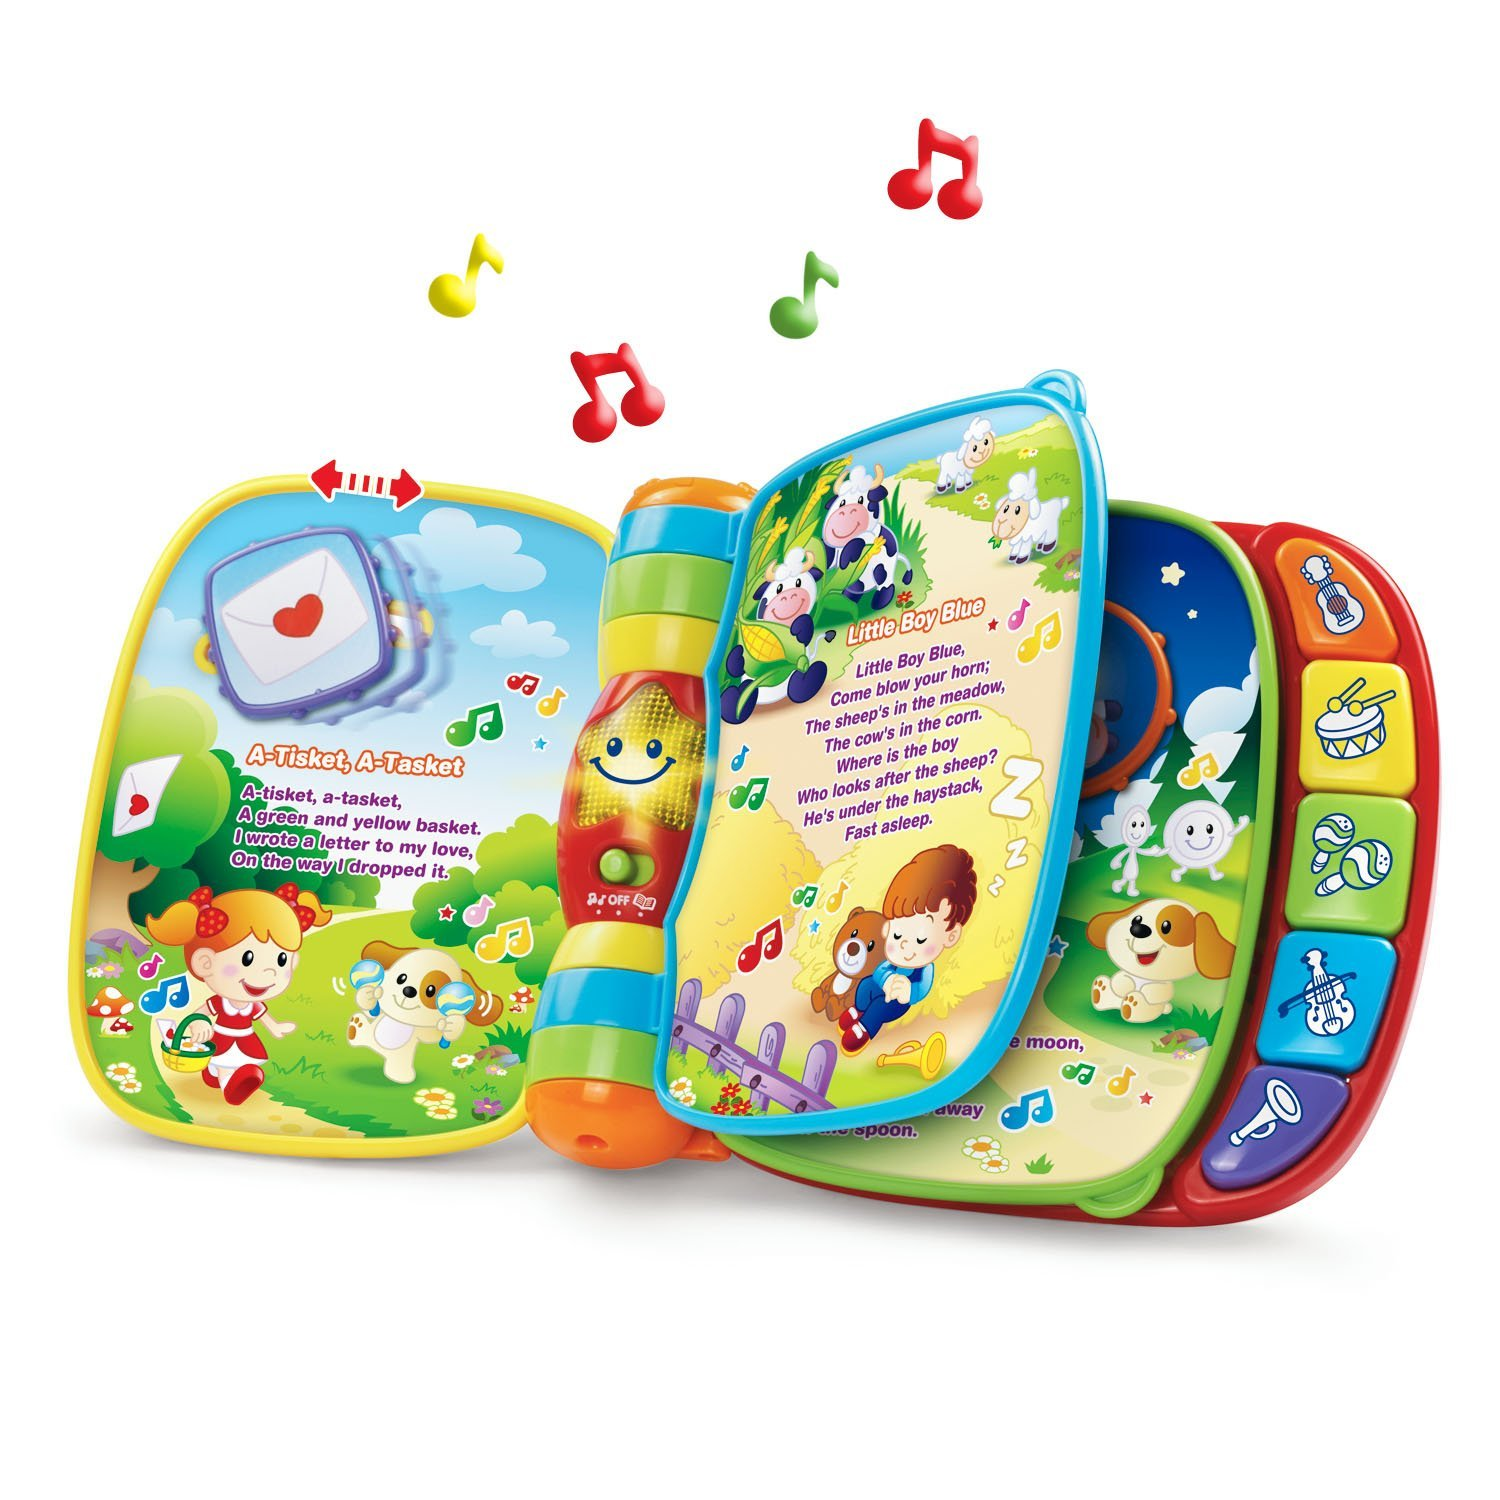 VTech Musical Rhymes Book, Learn 40+ Songs, Nursery Rhymes, New! by